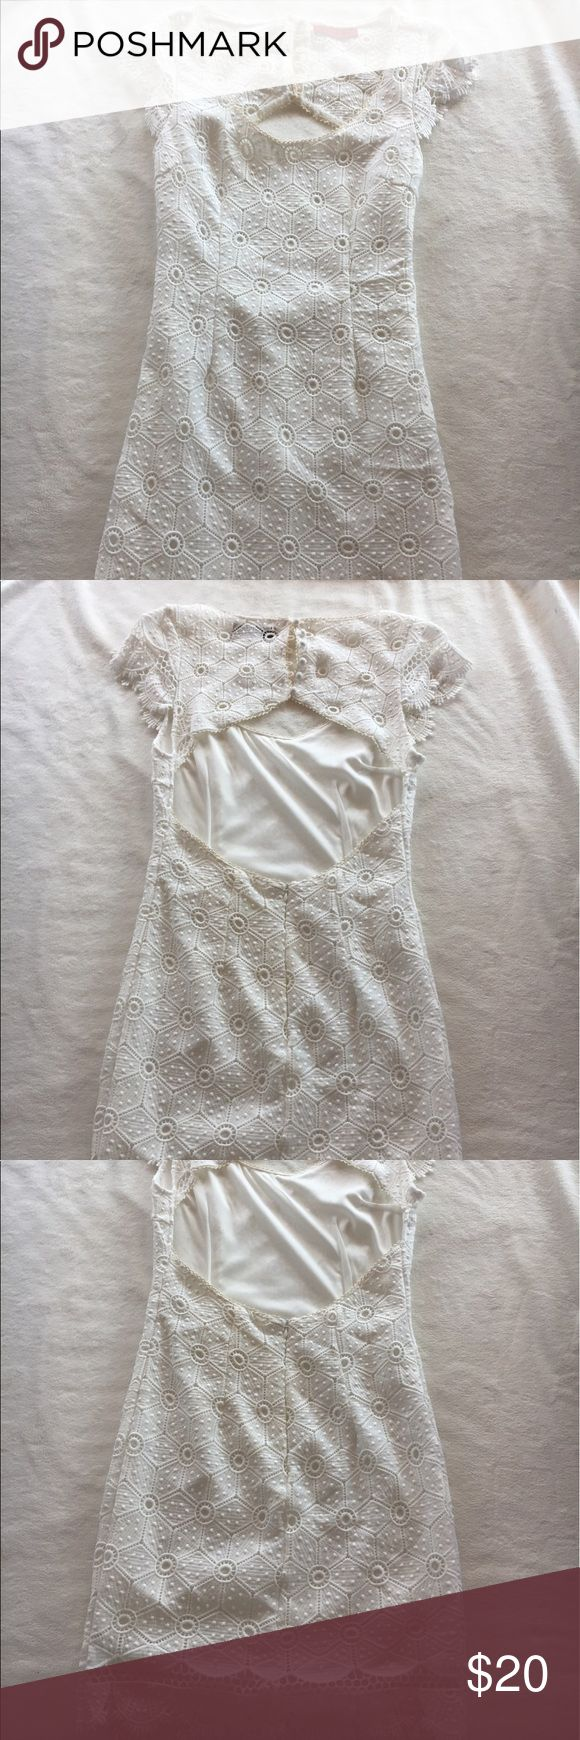 Lace crochet Cream Mini Dress with Cutout Back Lace Crochet Cream Mini Dress with Cutout Back and Scalloped Skirt Hem, tight fitting Size Medium, Perfect for Spring Weddings/Formals/Bachelorette Parties, originally from Lulu's Lulu's Dresses Mini